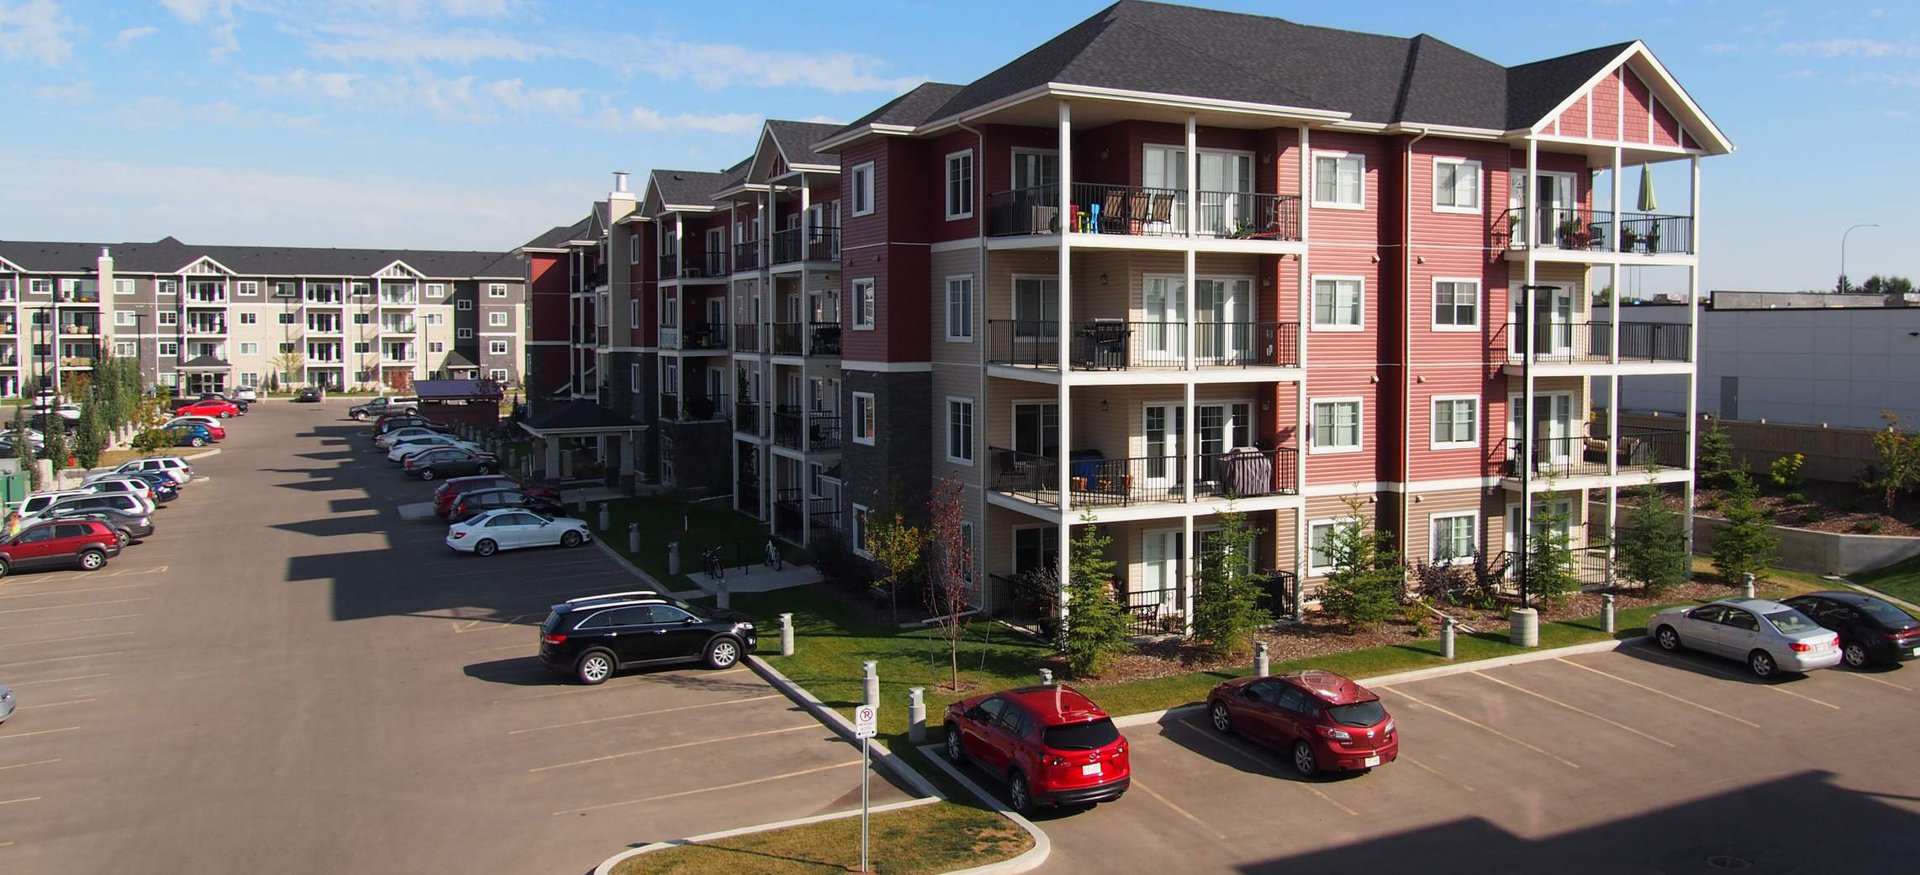 Apartment for rent at 4 & 6 Augustine Crescent, Sherwood Park, AB. This is the outdoor building.